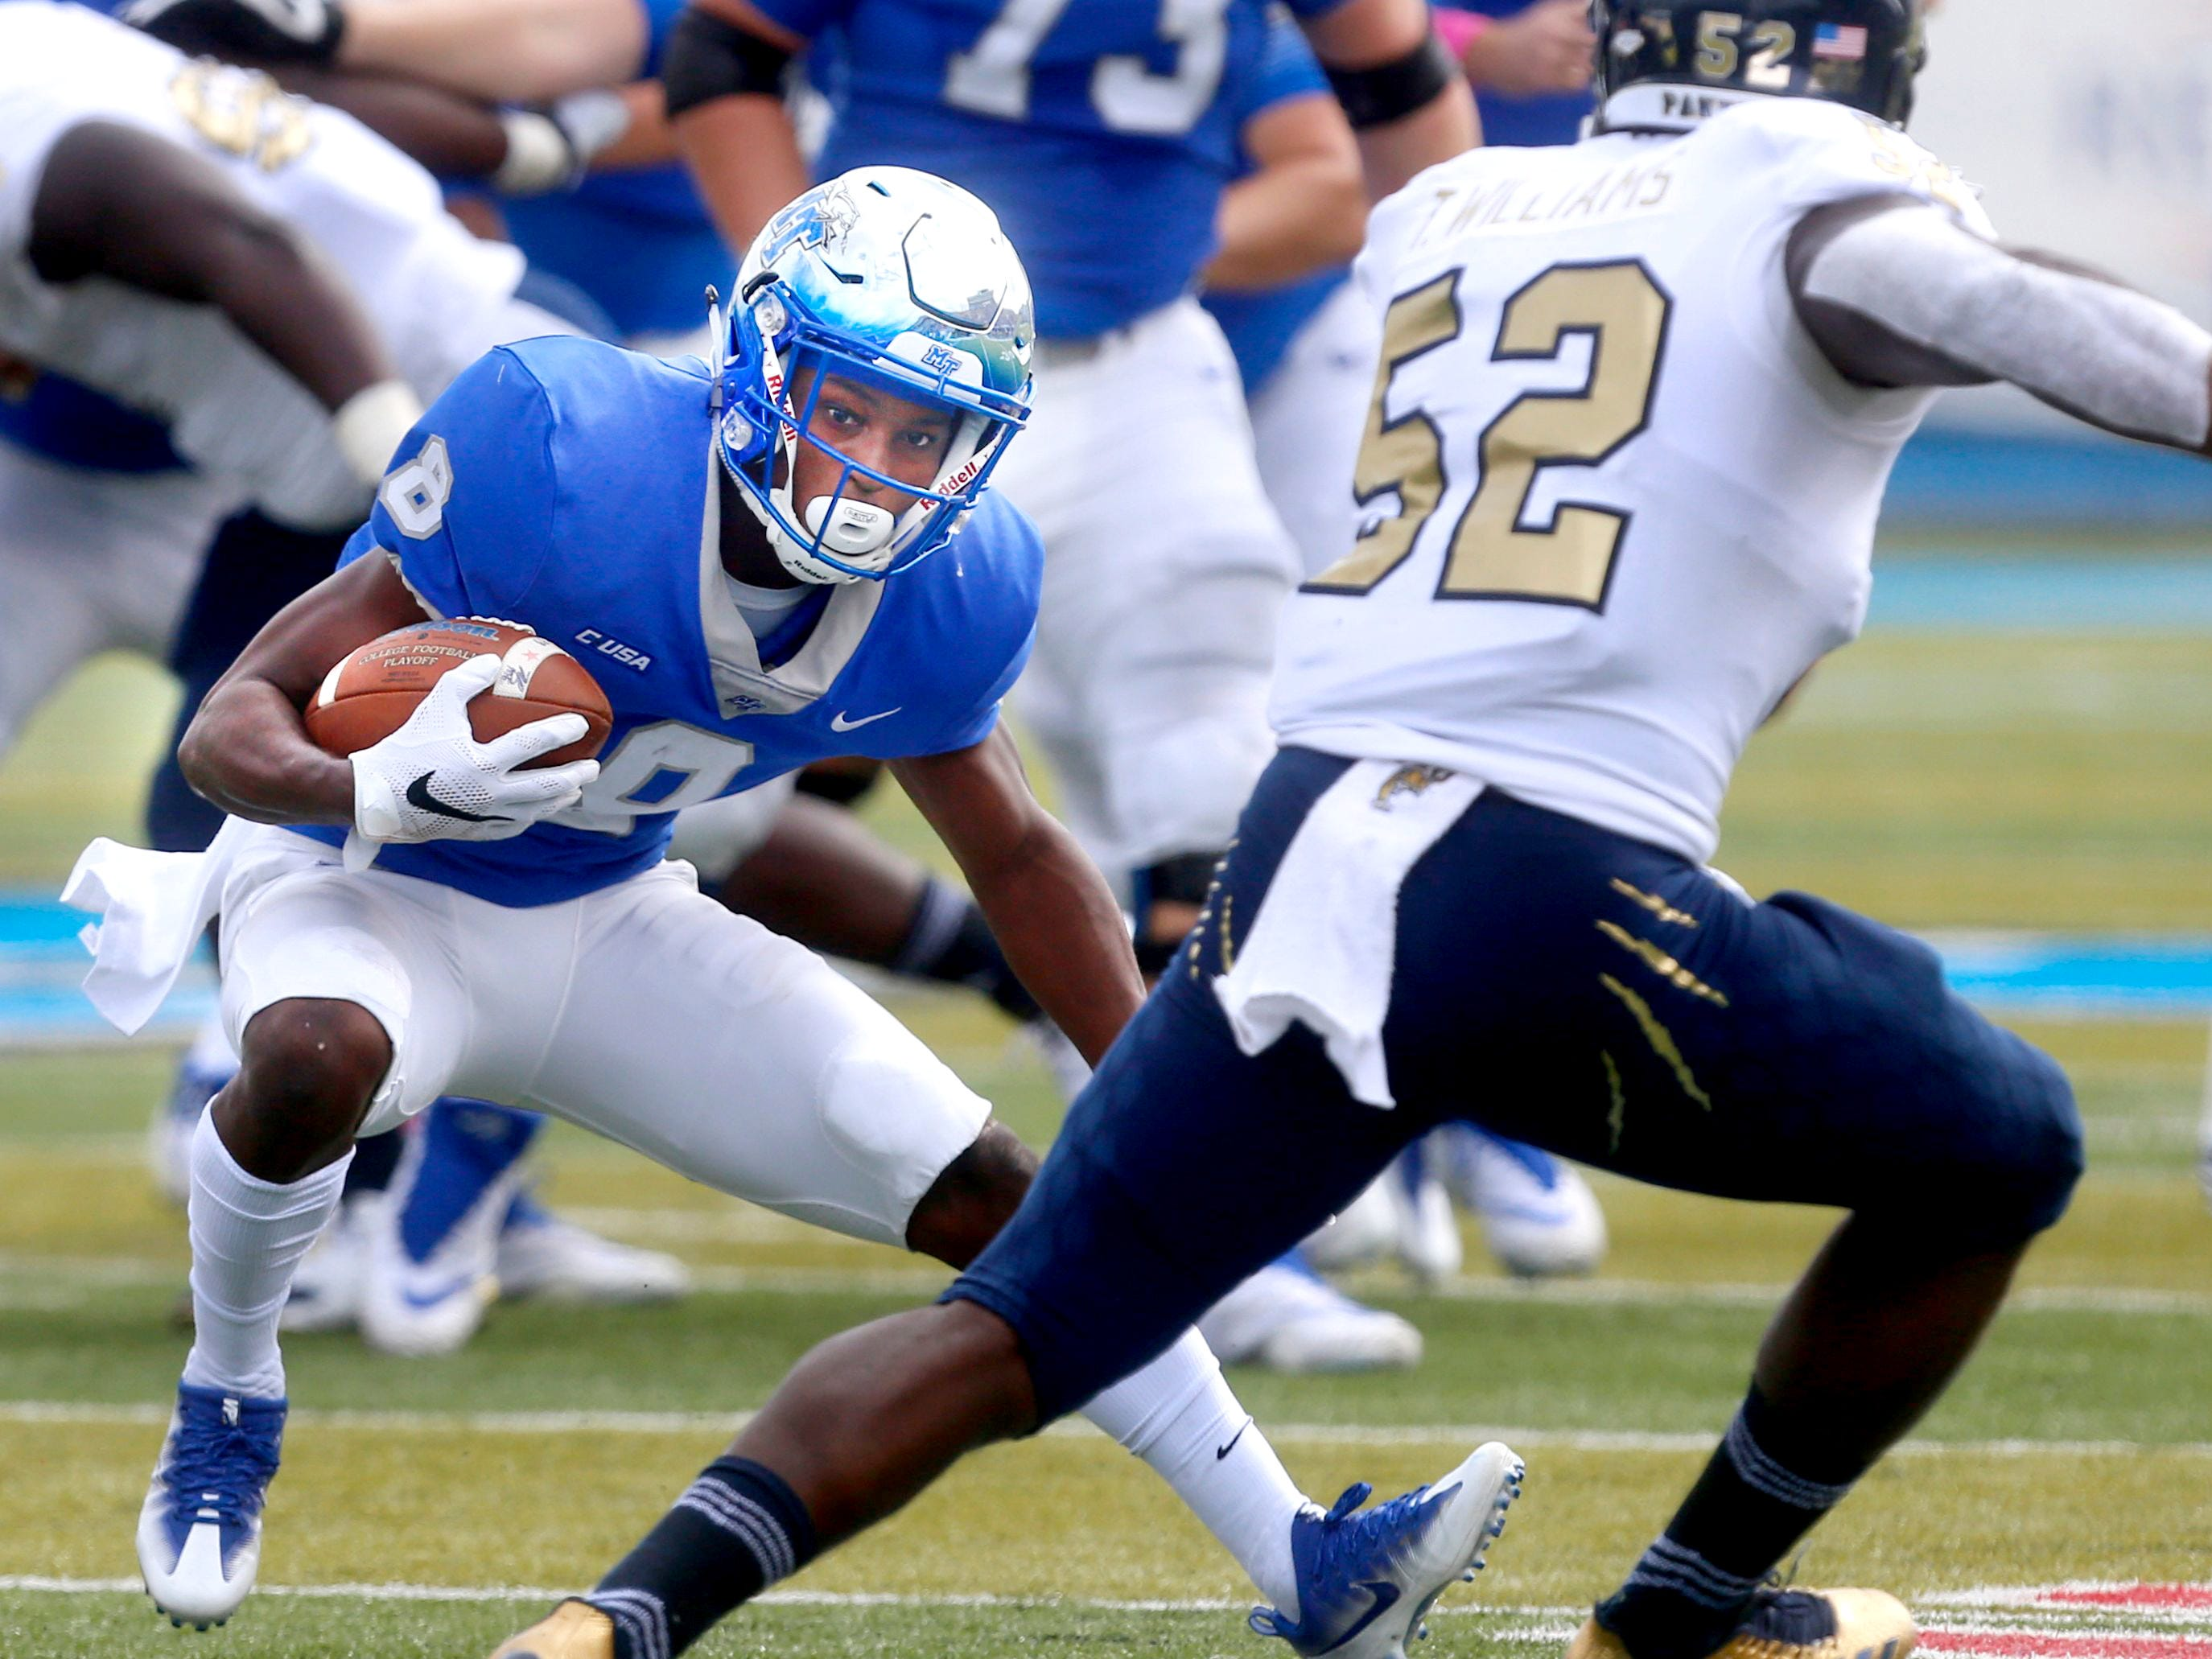 MTSU?s Ty Lee  runs the ball as FIU?s Treyvon Williams  moves in for the tackle during a game last season. HELEN COMER / DNJ